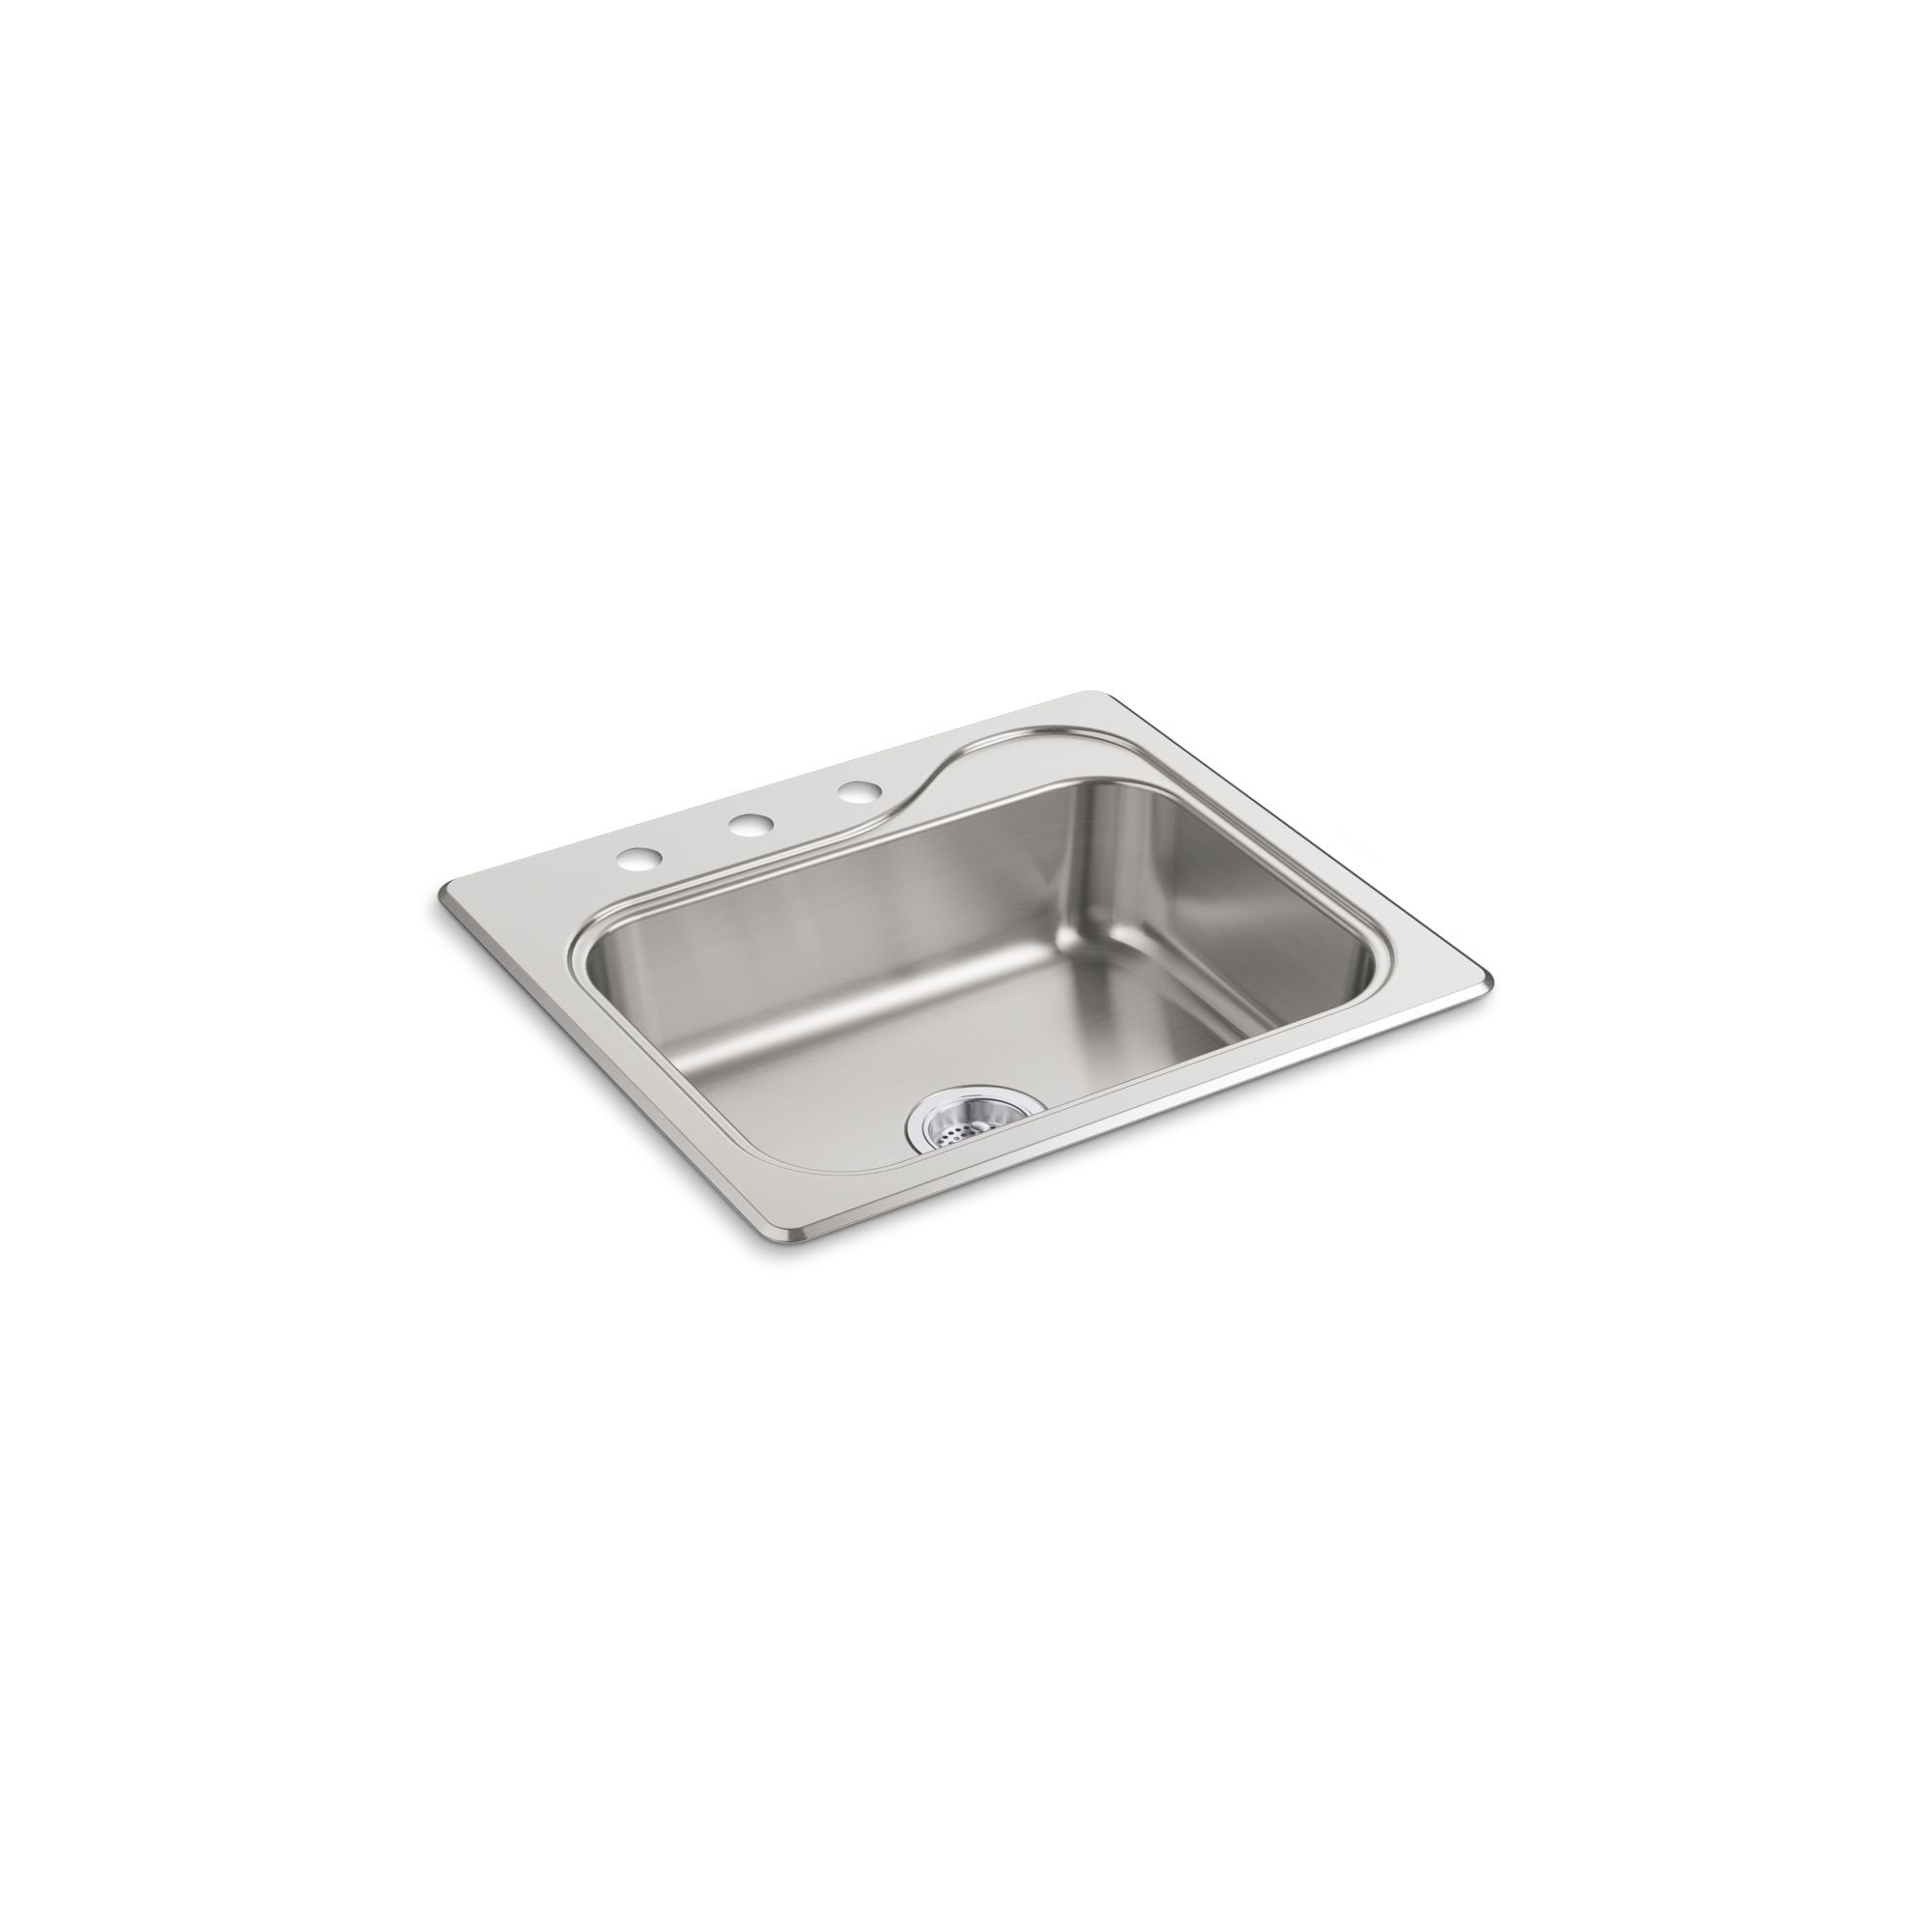 Shop Sterling Southhaven 25 In Single Bowl Drop In 20 Gauge Stainless Steel Kitchen Sink Overstock 30022944